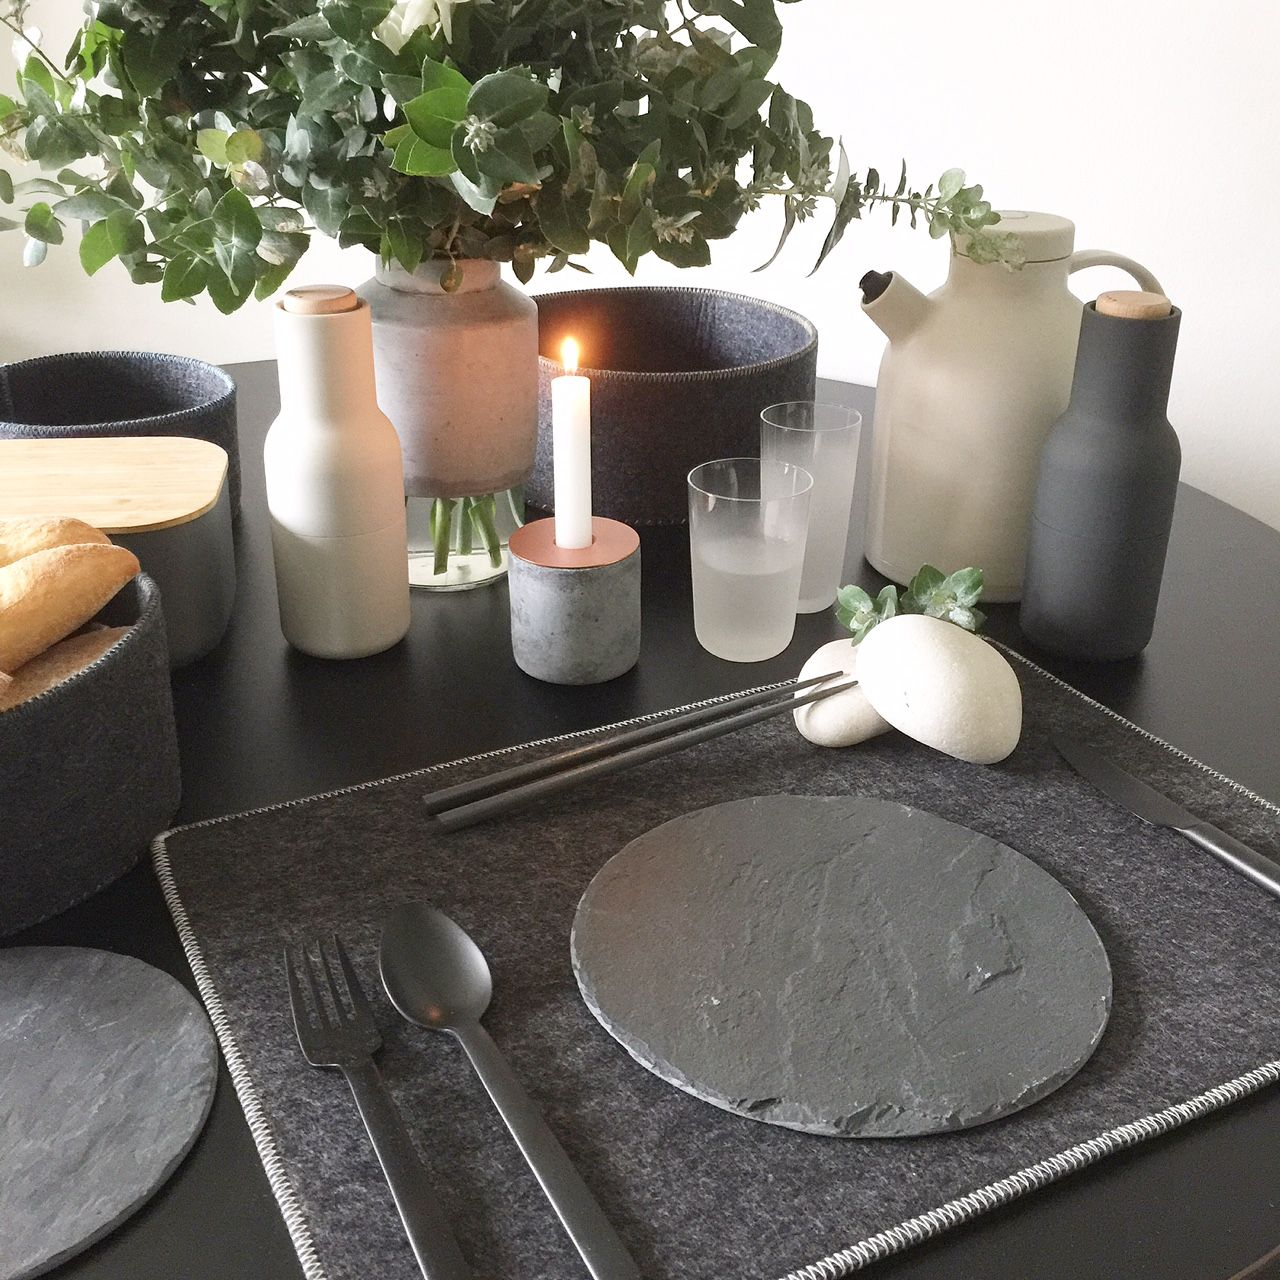 Felt Placemats Bread Baskets Bottle Grinders Slate Plates Norm Cutlery Matte Black Chunk Concrete Copper Cand Design Store Slate Plate Objects Design